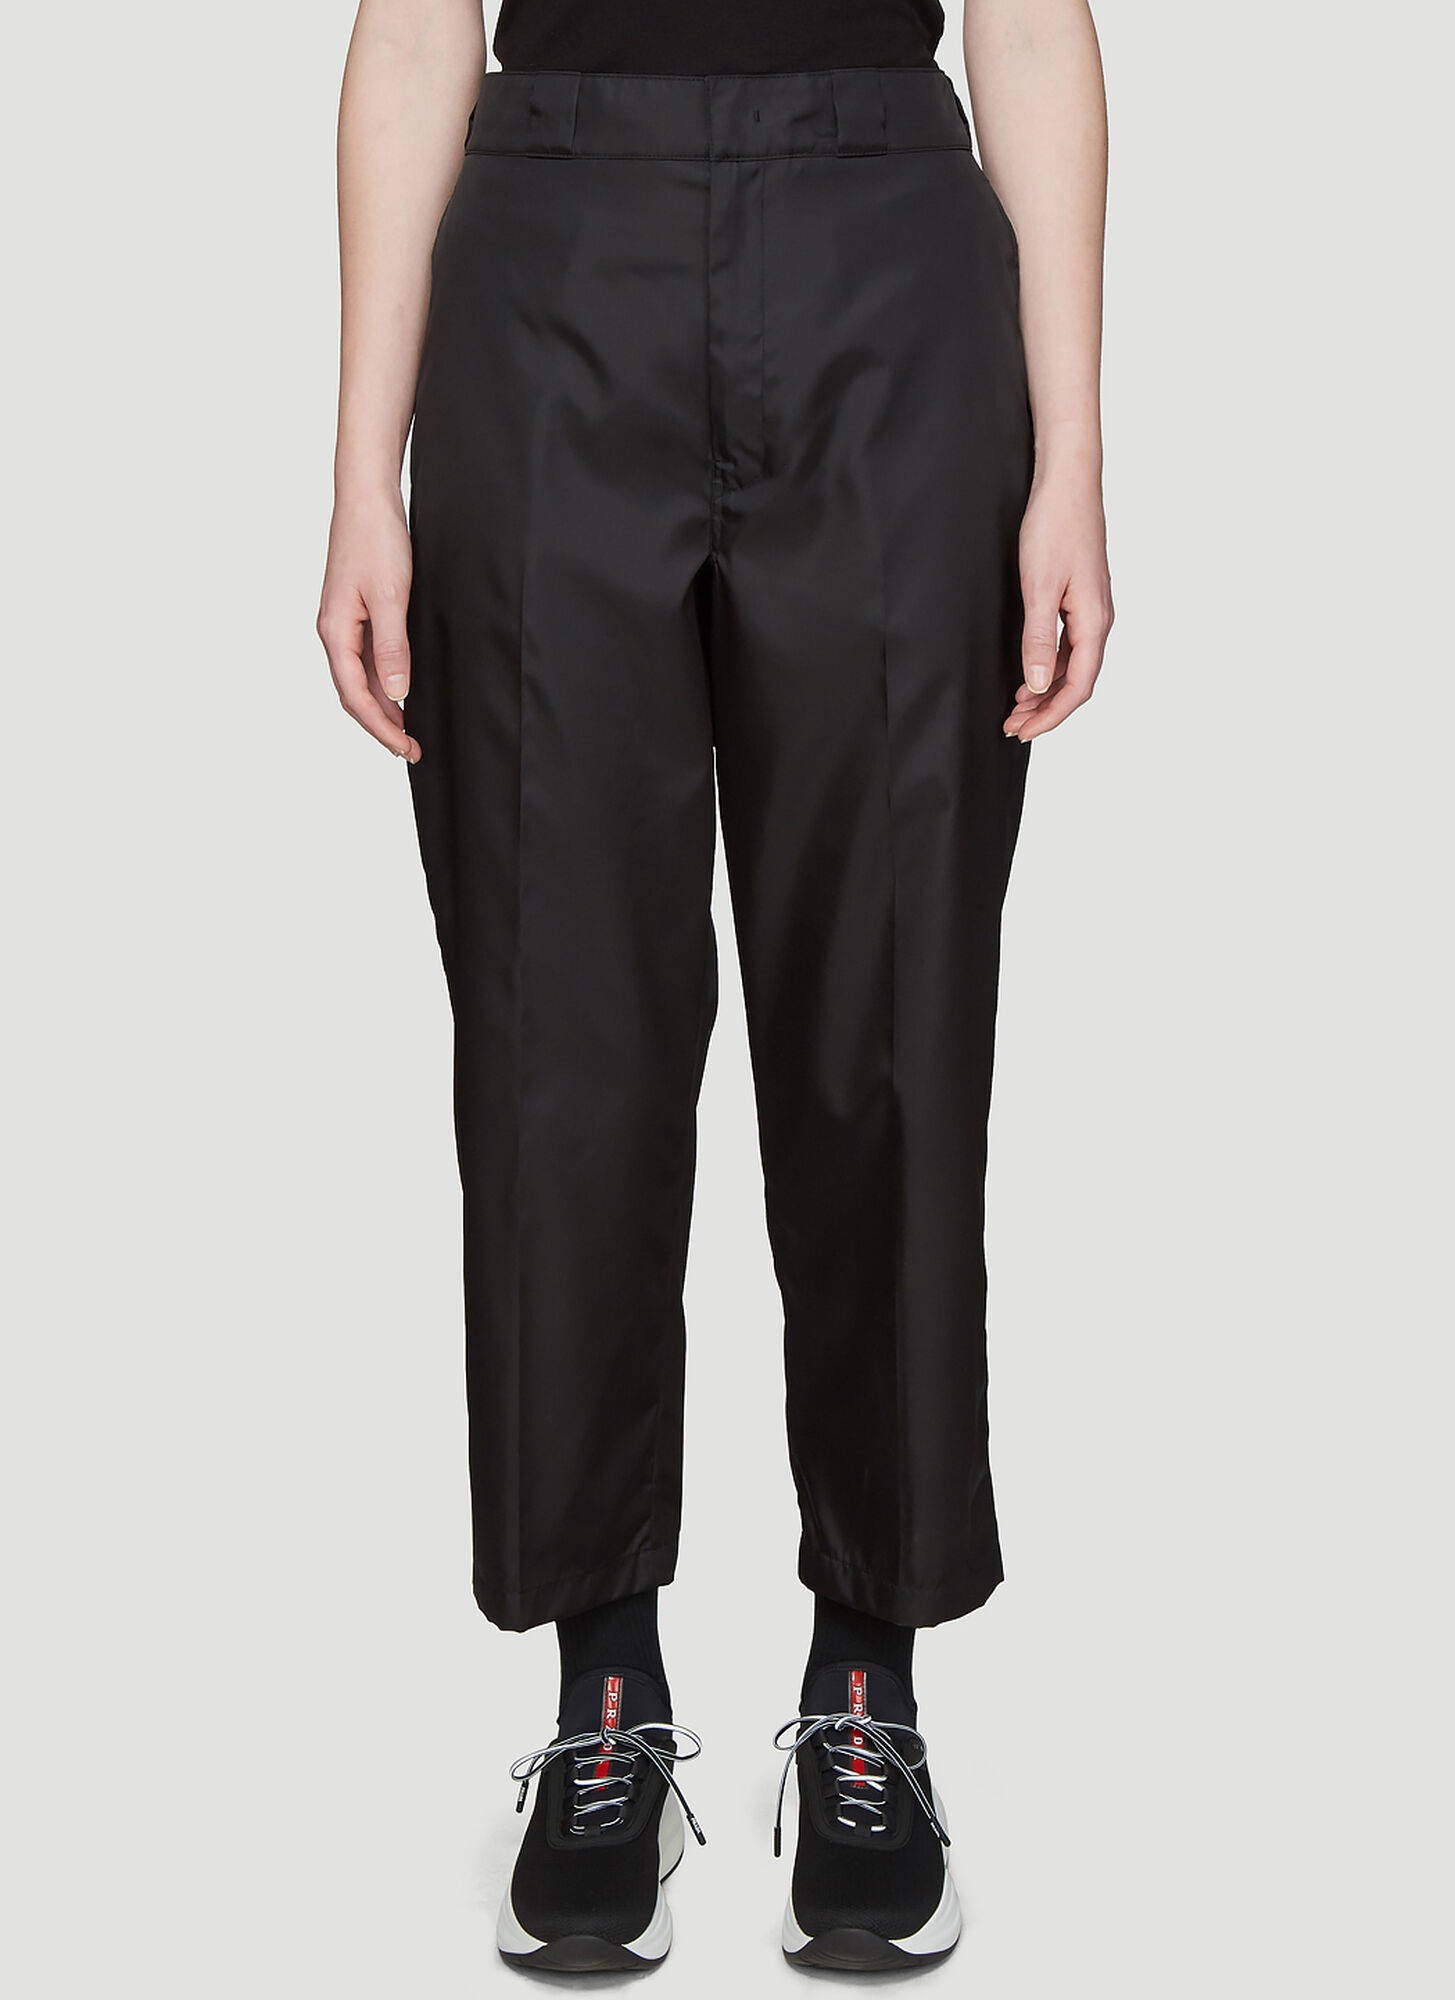 Prada Classic Nylon Pants in Black